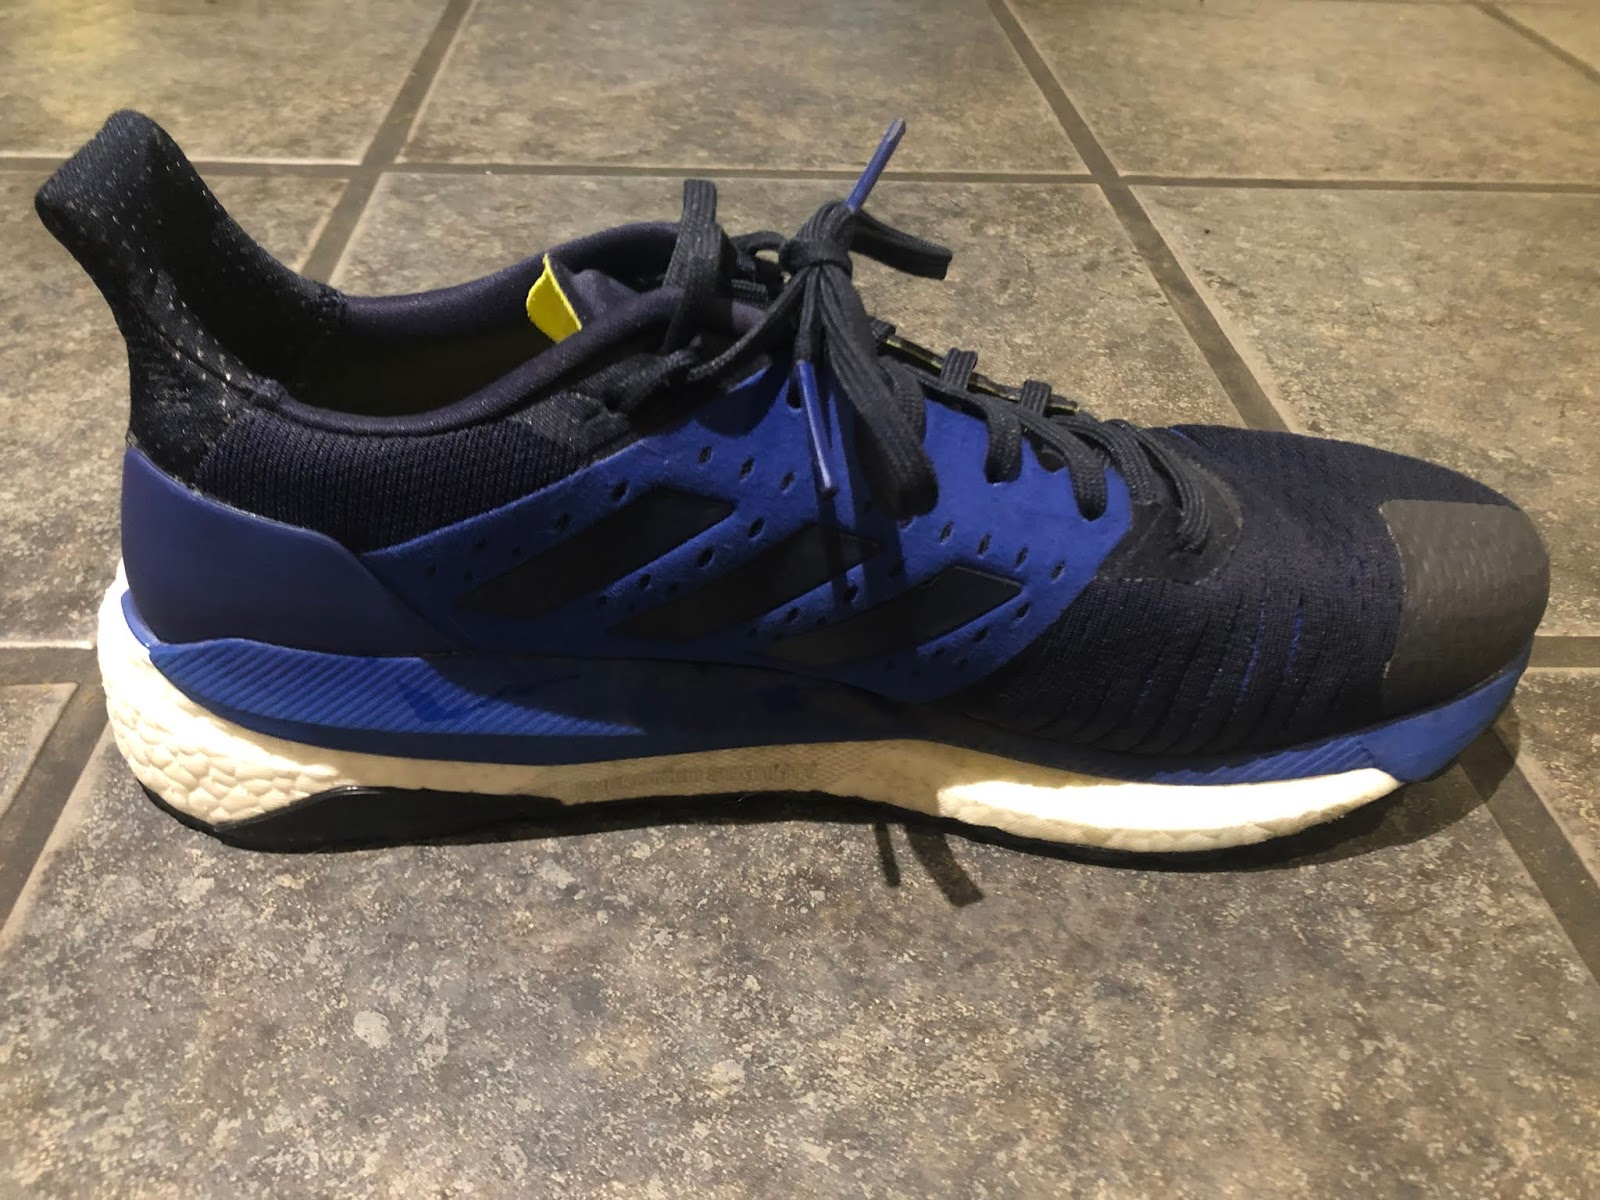 quality design 637c1 dcba4 ... very well with the Adidas logo on the side and it is possible to get a  great fit. The fit of the Adidas Solar Glide ST is great for an everyday  trainer.